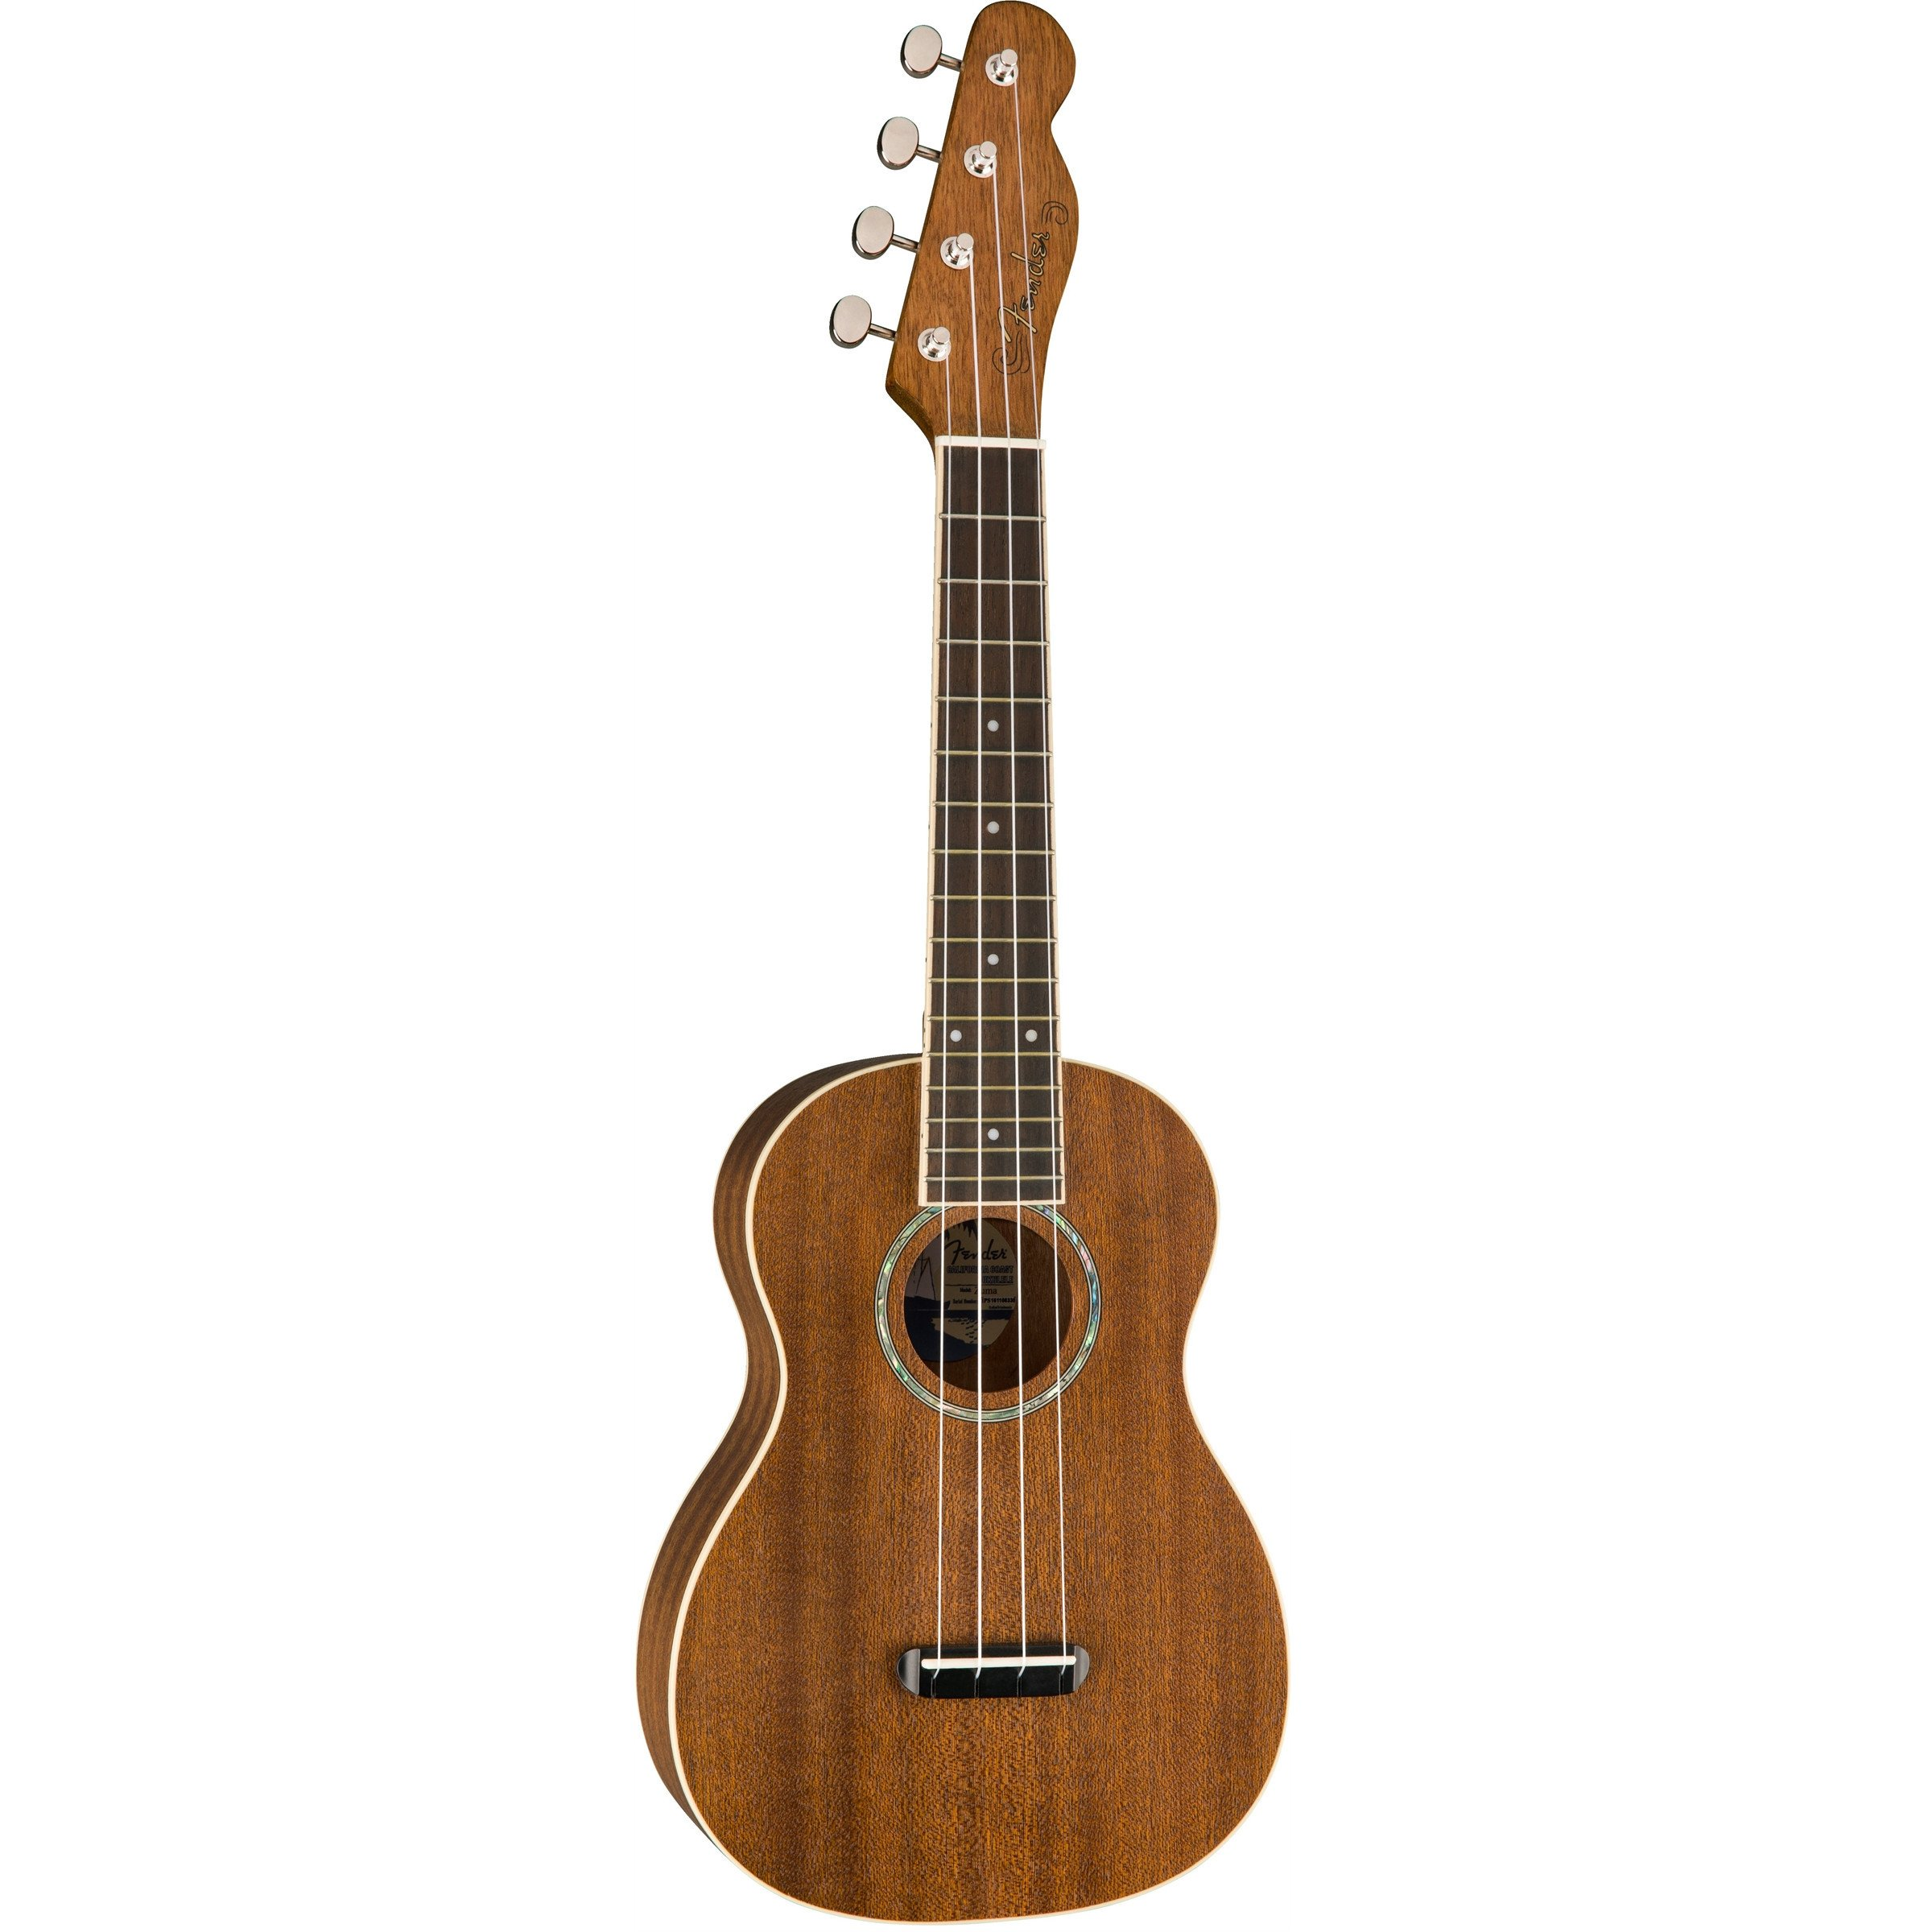 Fender California Coast Zuma concert ukulele, natural